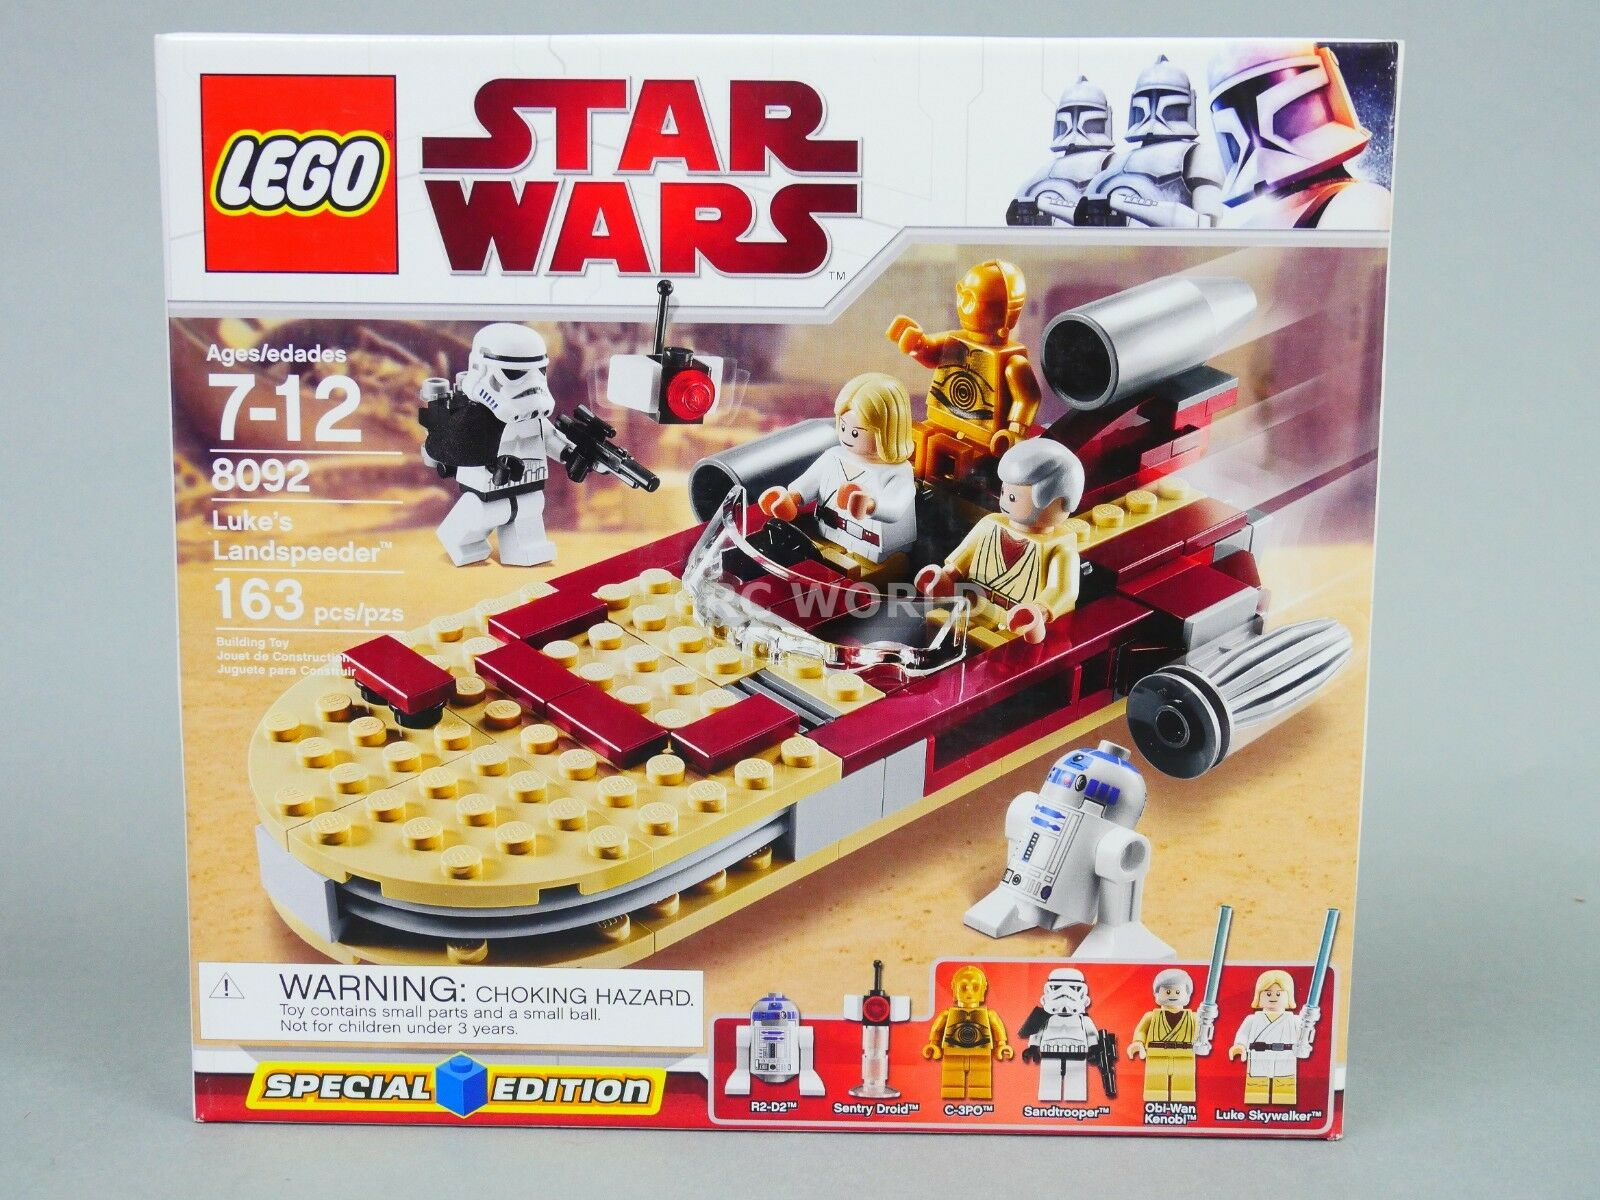 LEGO Star Wars LUKE'S LAND SPEEDER 80927 (163 pcs)  rk1t